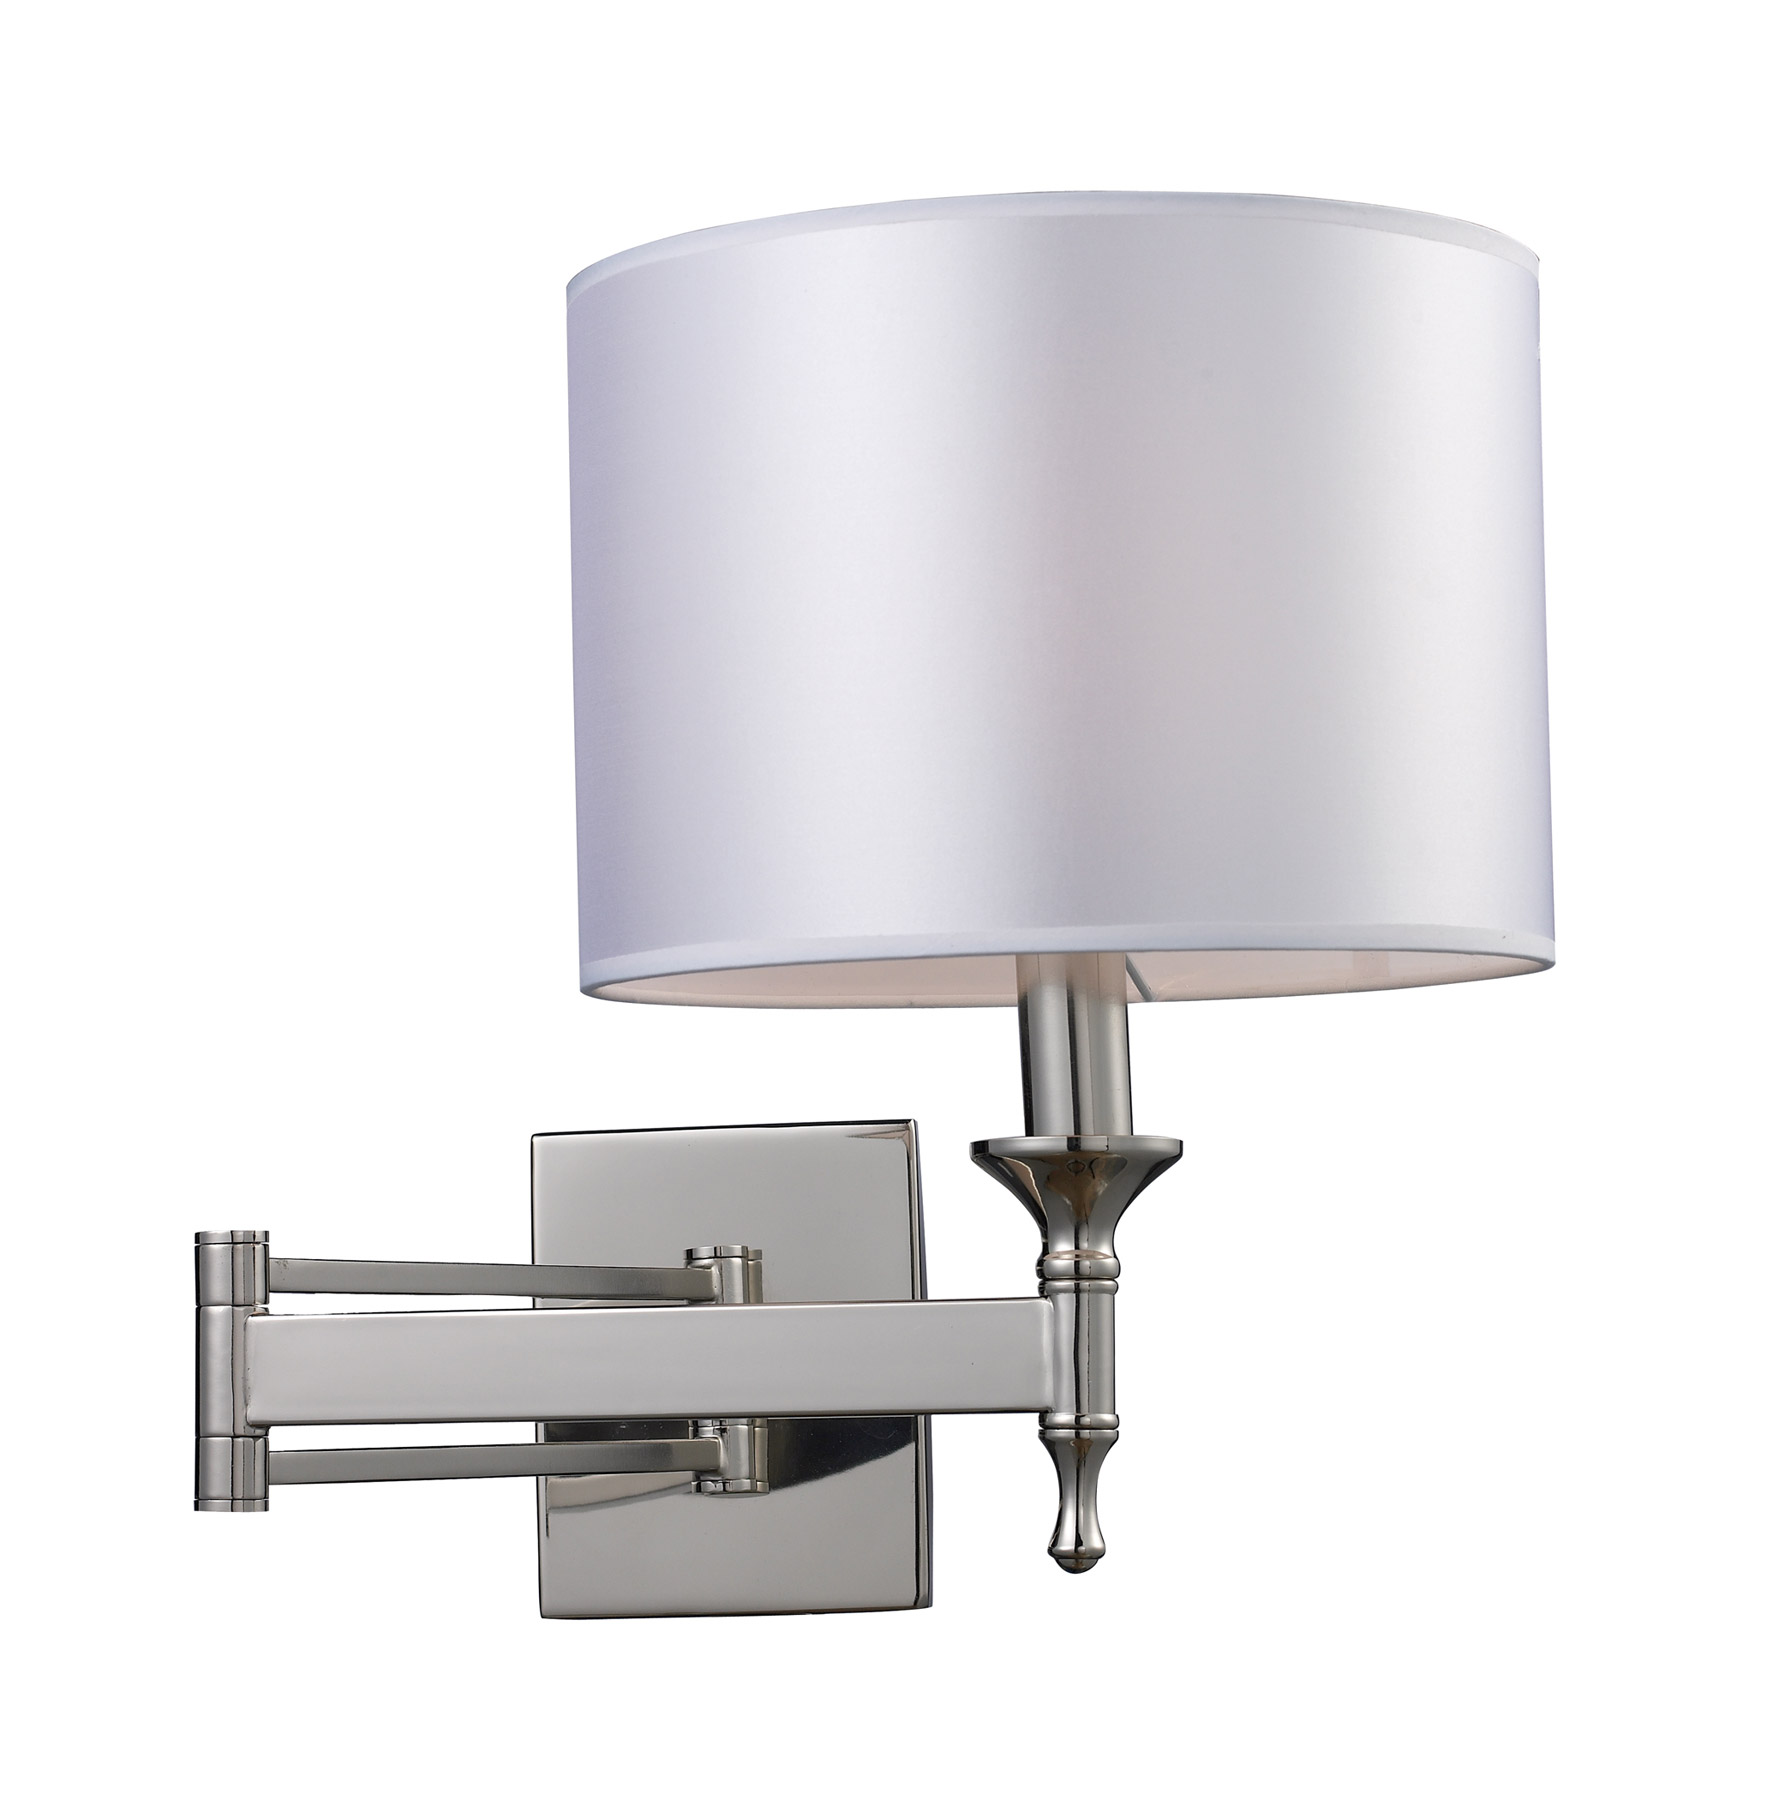 elk lighting pembroke swing arm wall sconce